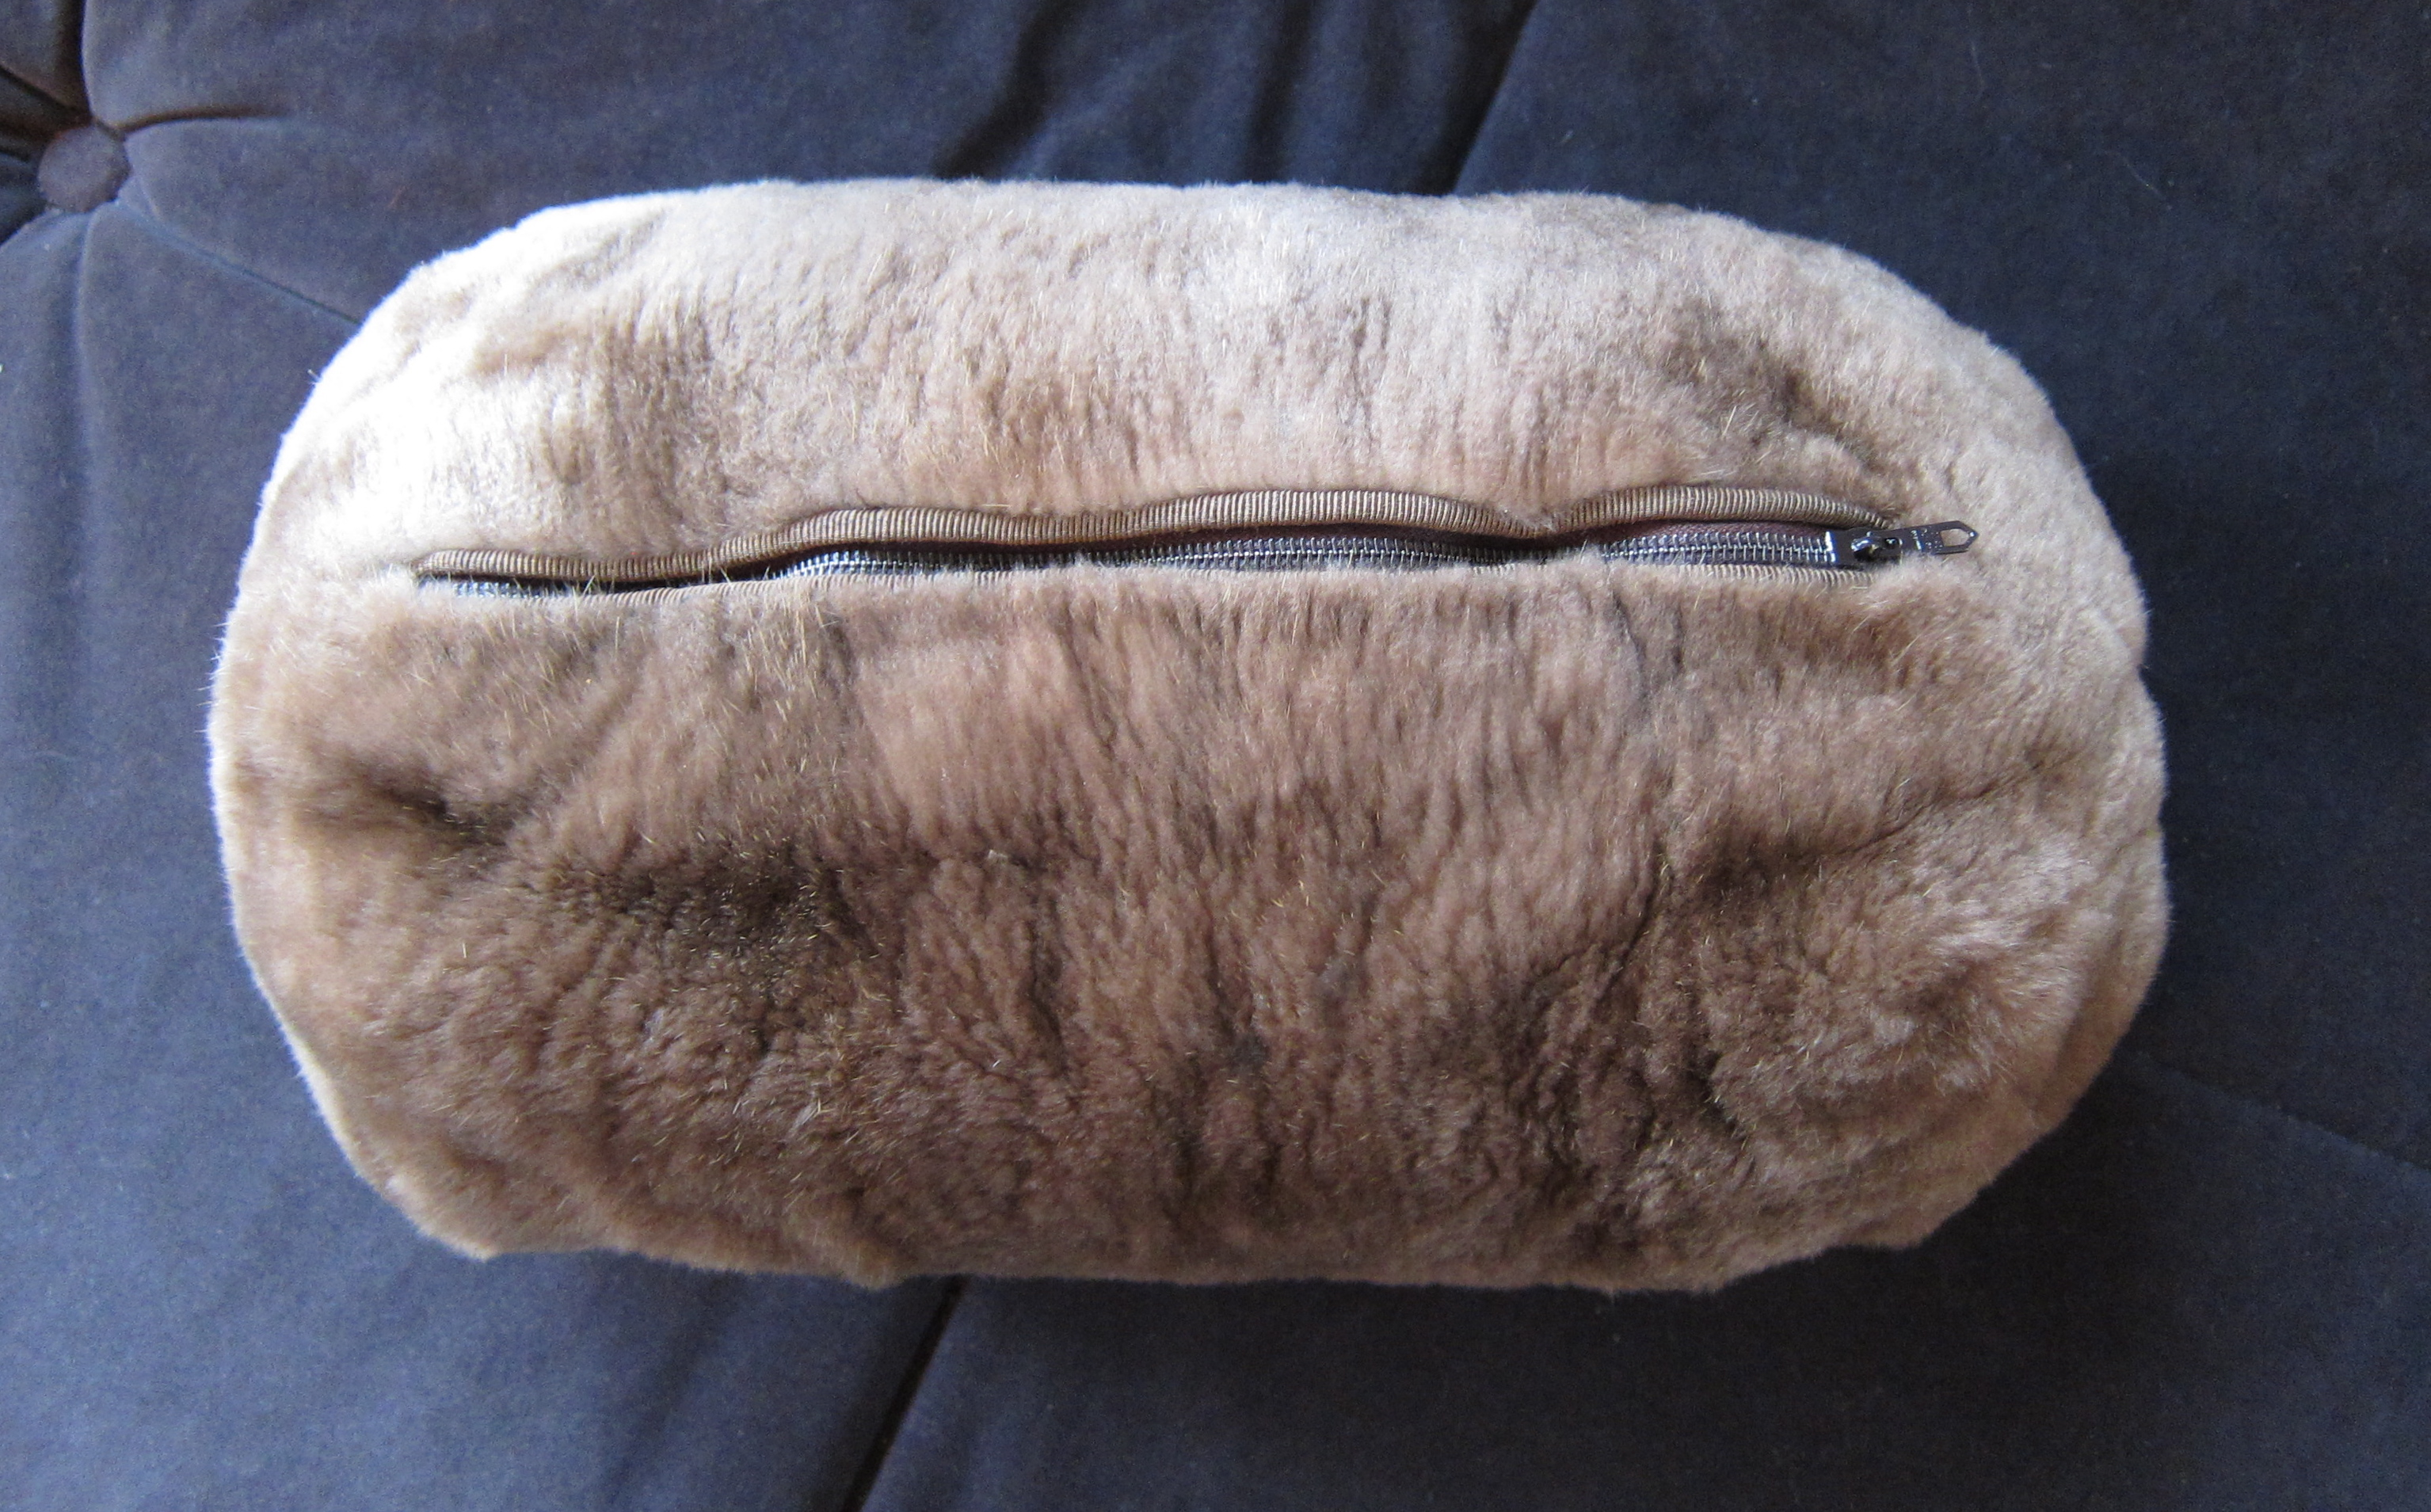 629e9066941 This is the Backside of the Sheared Natural Brown Beaver Muff Showing the  Zipper that Gives Access Into The Satin Lined Purse Compartment discreetly  Hidden ...